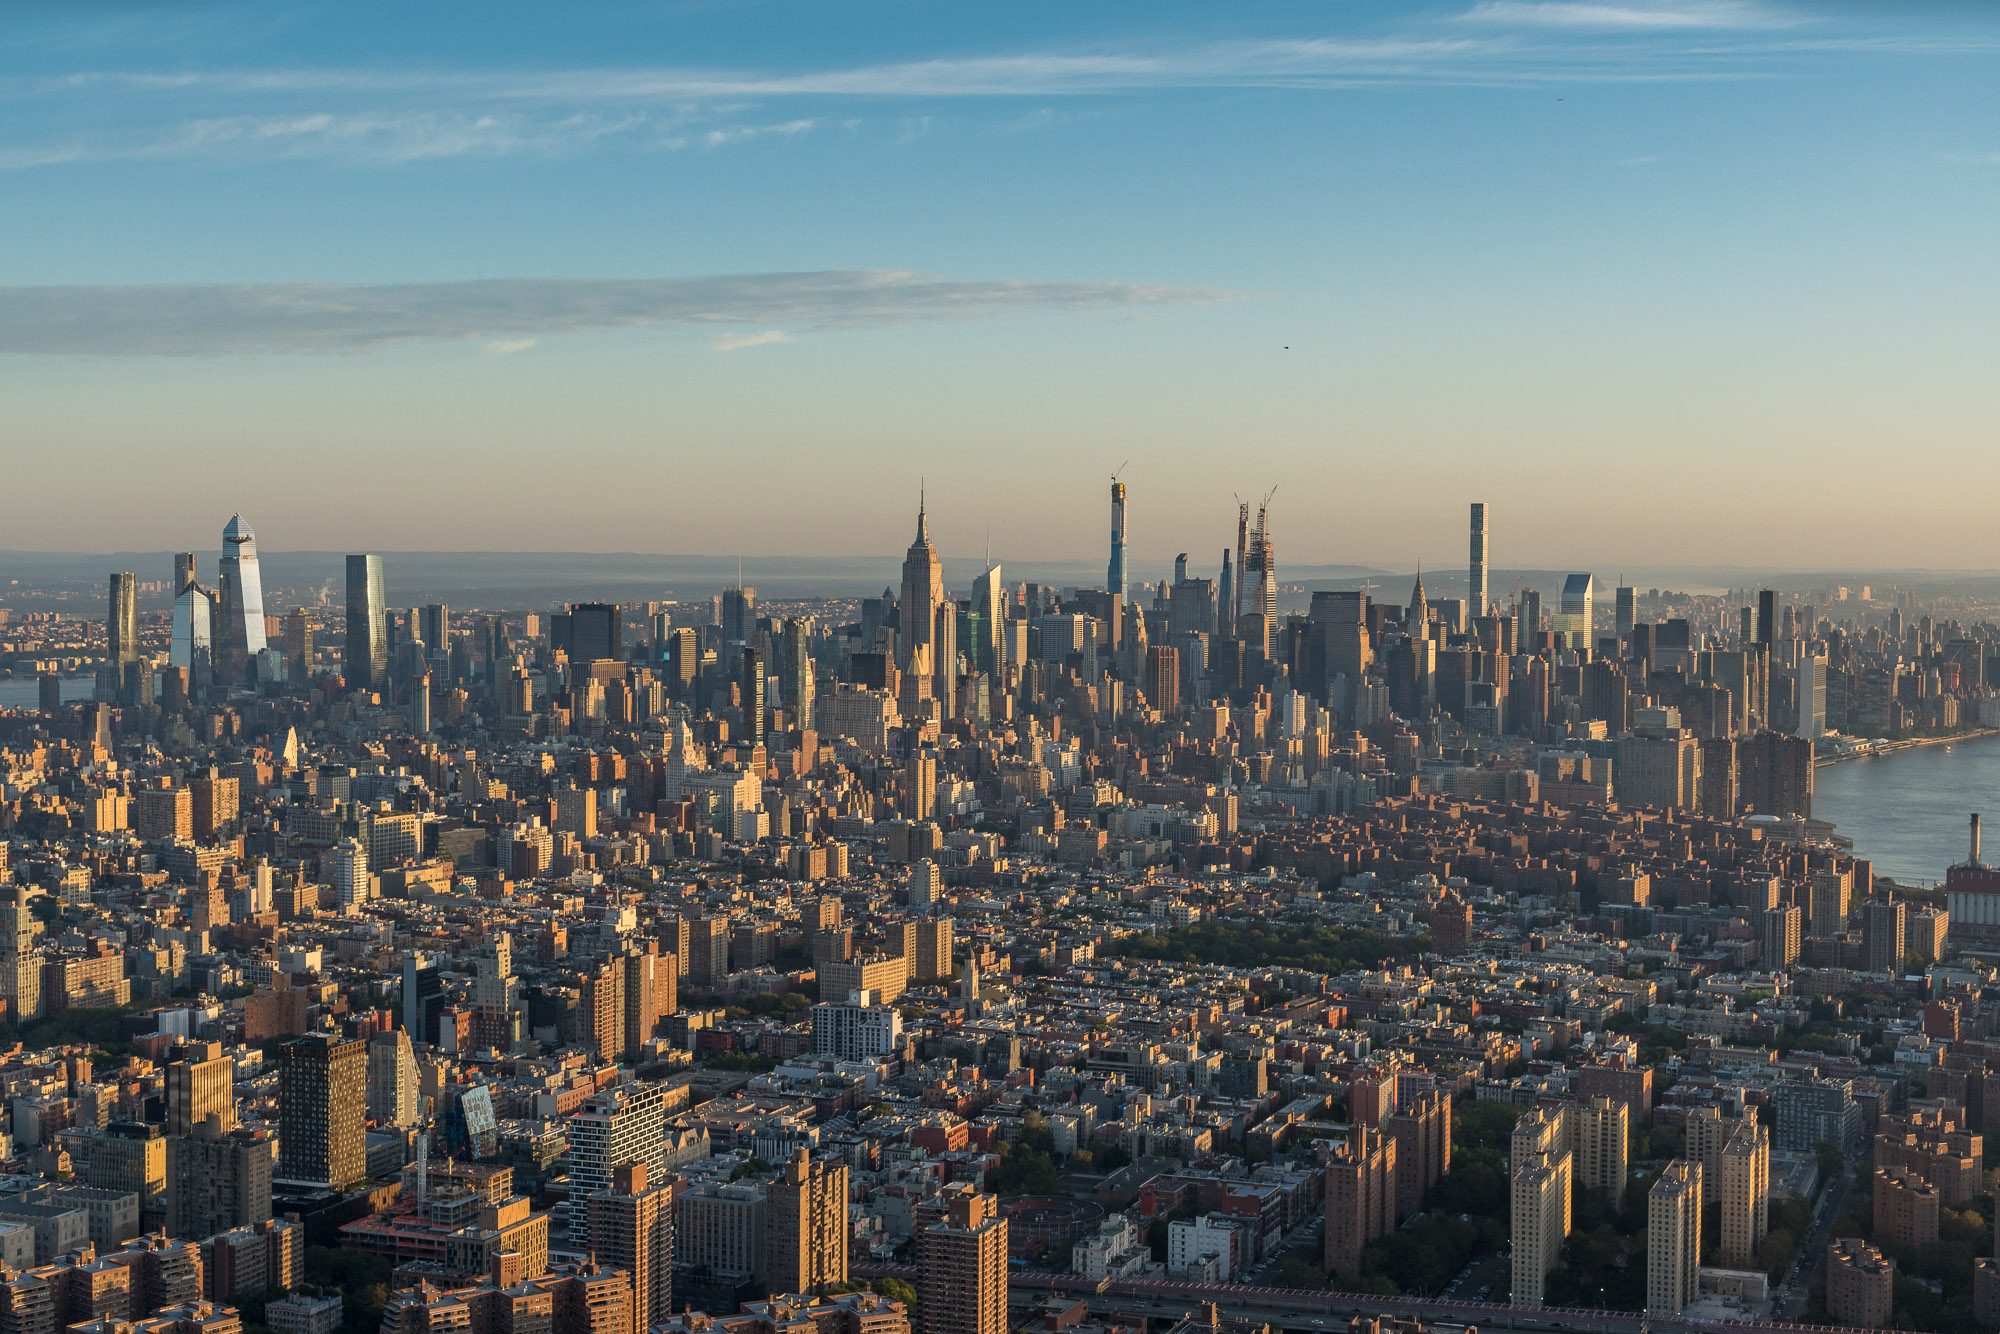 In 2019, NYC approved a ton of new residential units